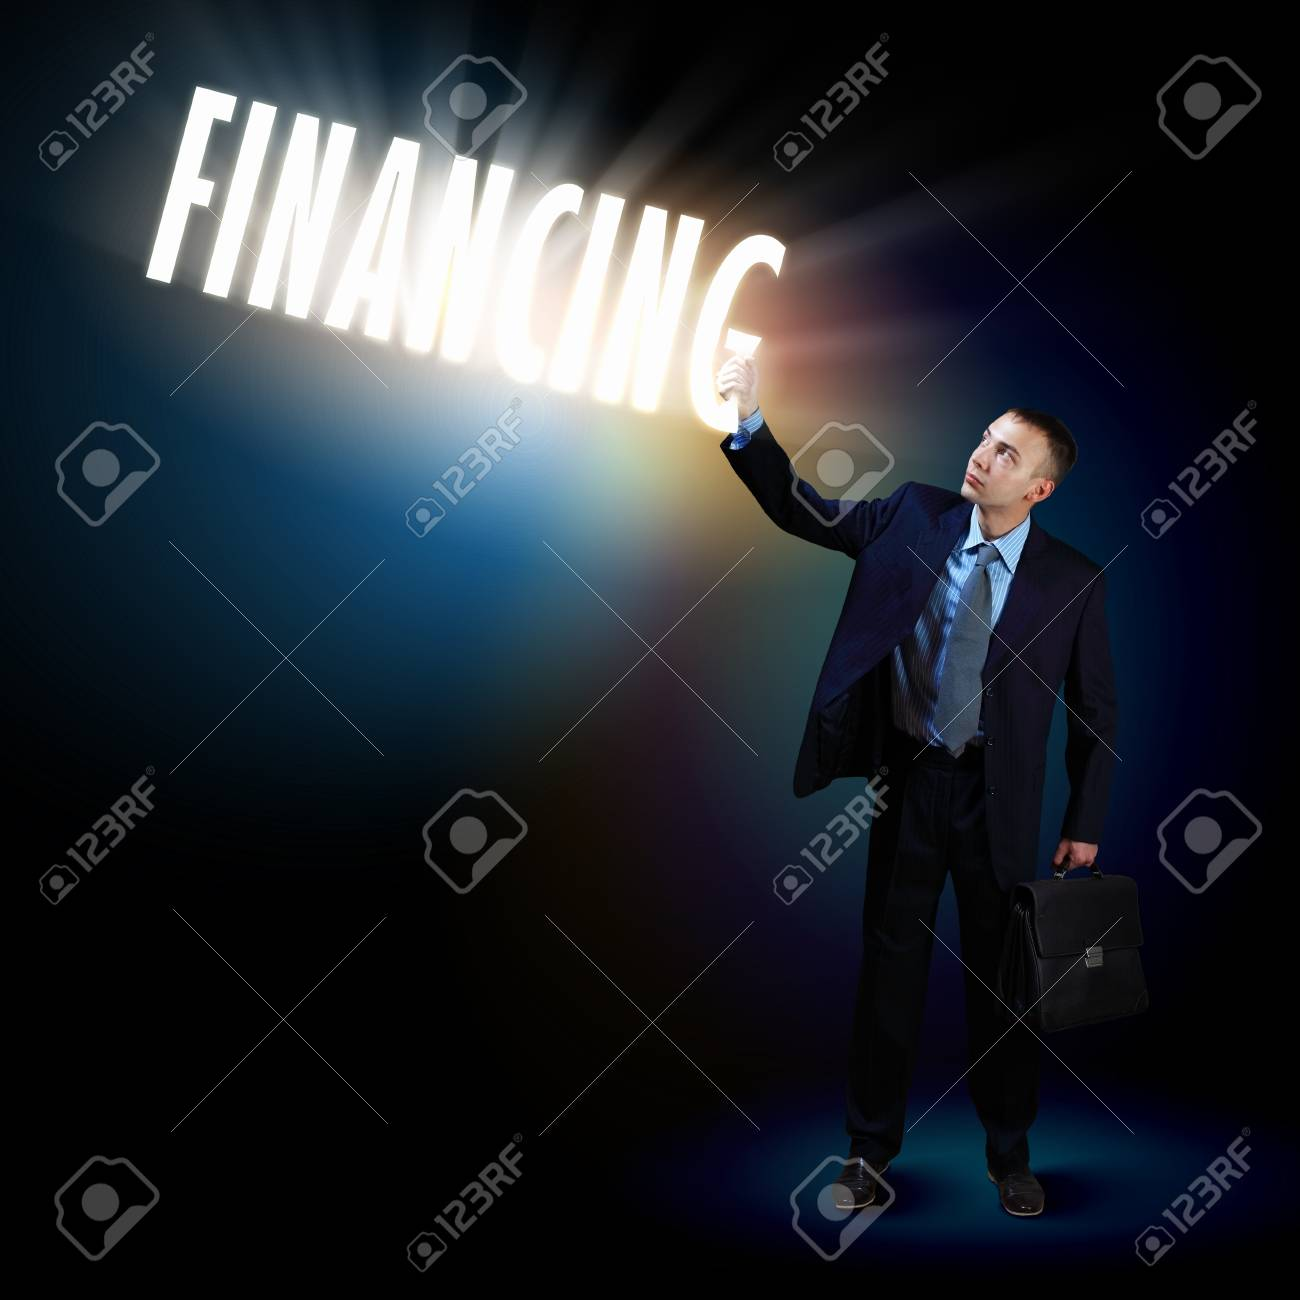 Young successful businessman holding a shining light in his hand as a symbol of success and advancement Stock Photo - 16589710